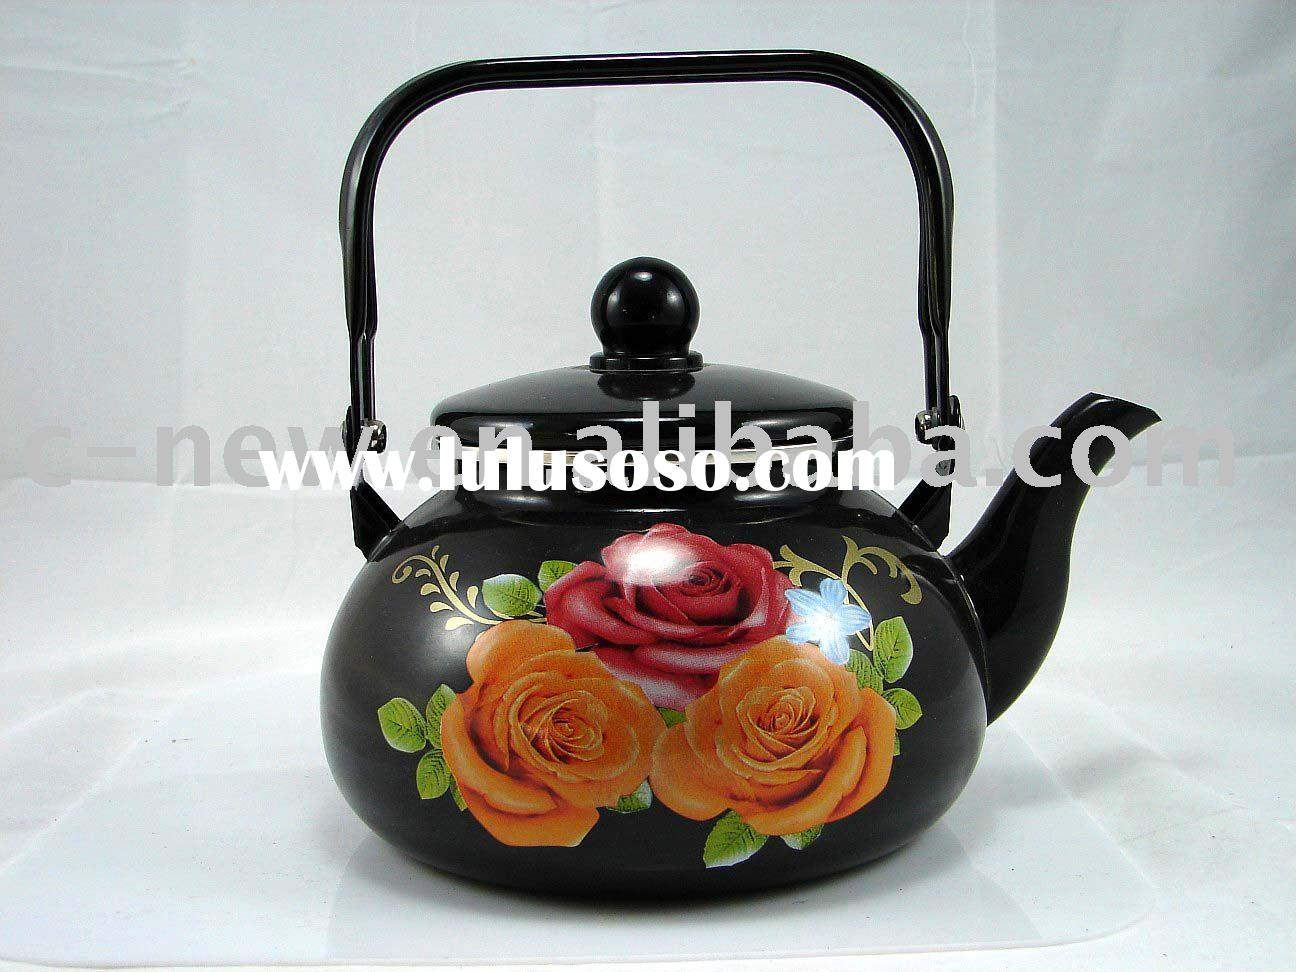 enamelware,tea kettle,whistling kettle